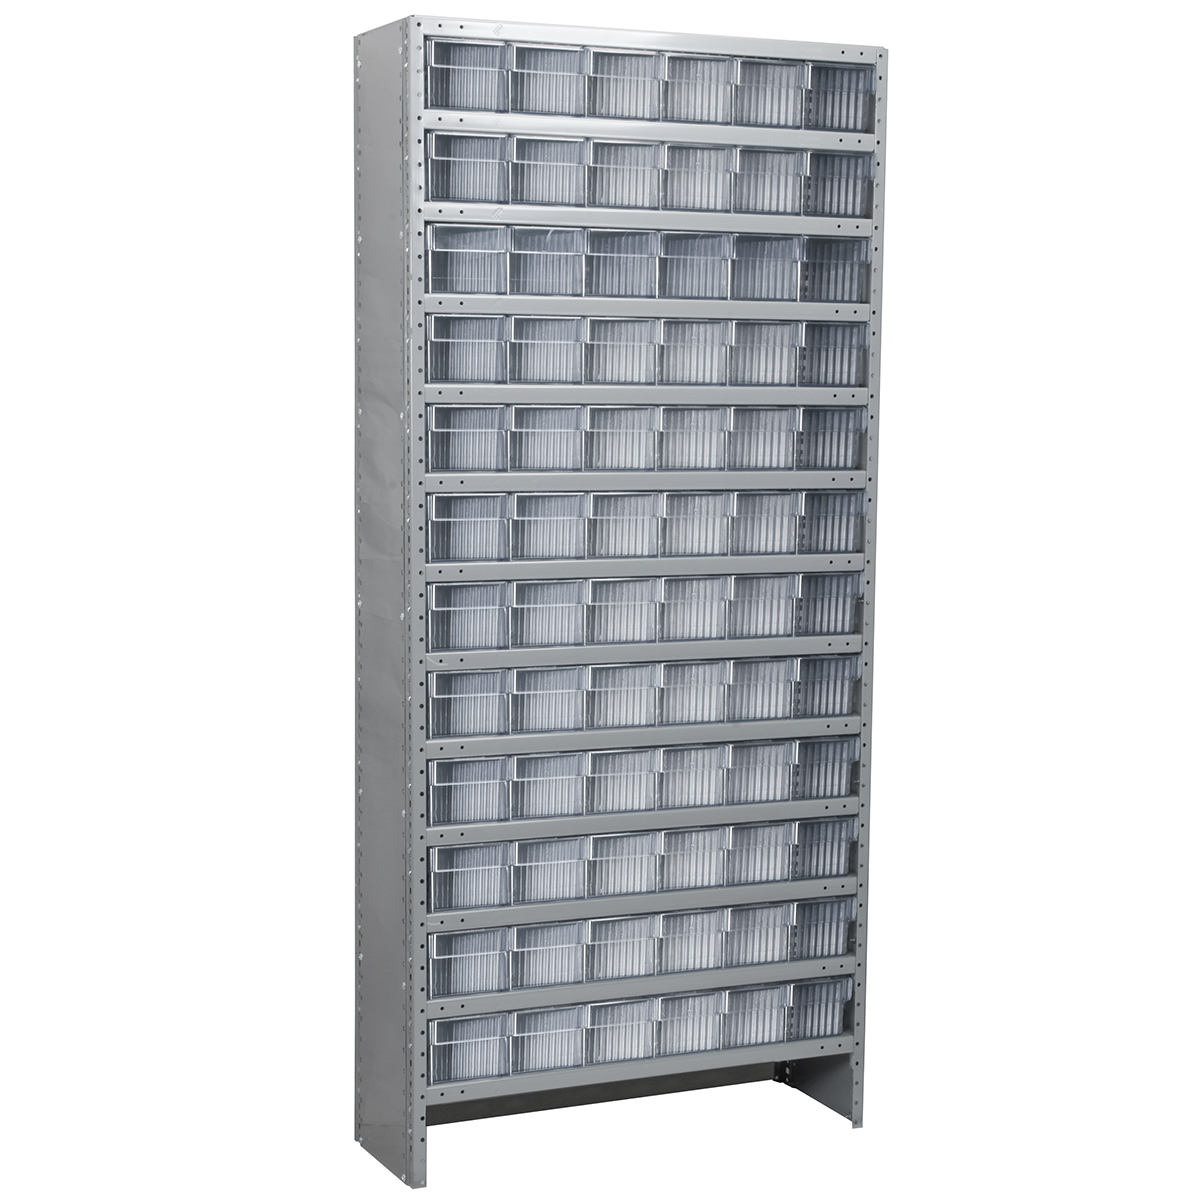 Enclosed Steel Shelving Kit, 12x36x79, 72 AkroDrawers, Gray/Clear.  This item sold in carton quantities of 1.